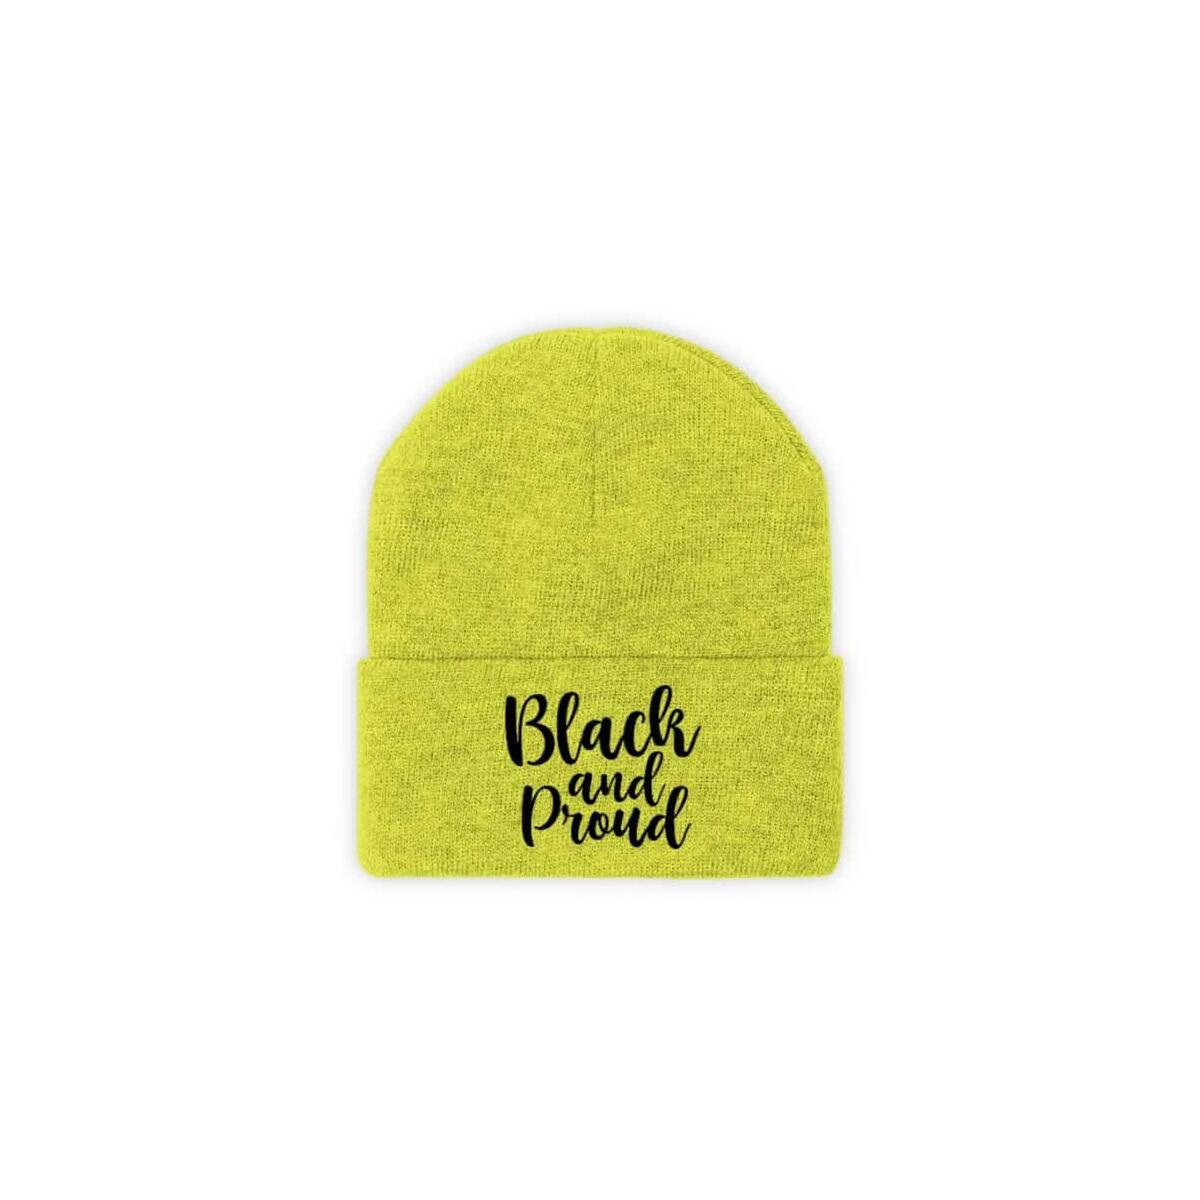 Afrocentric BLACK AND PROUD Knit Beanie, Neon Yellow / One size